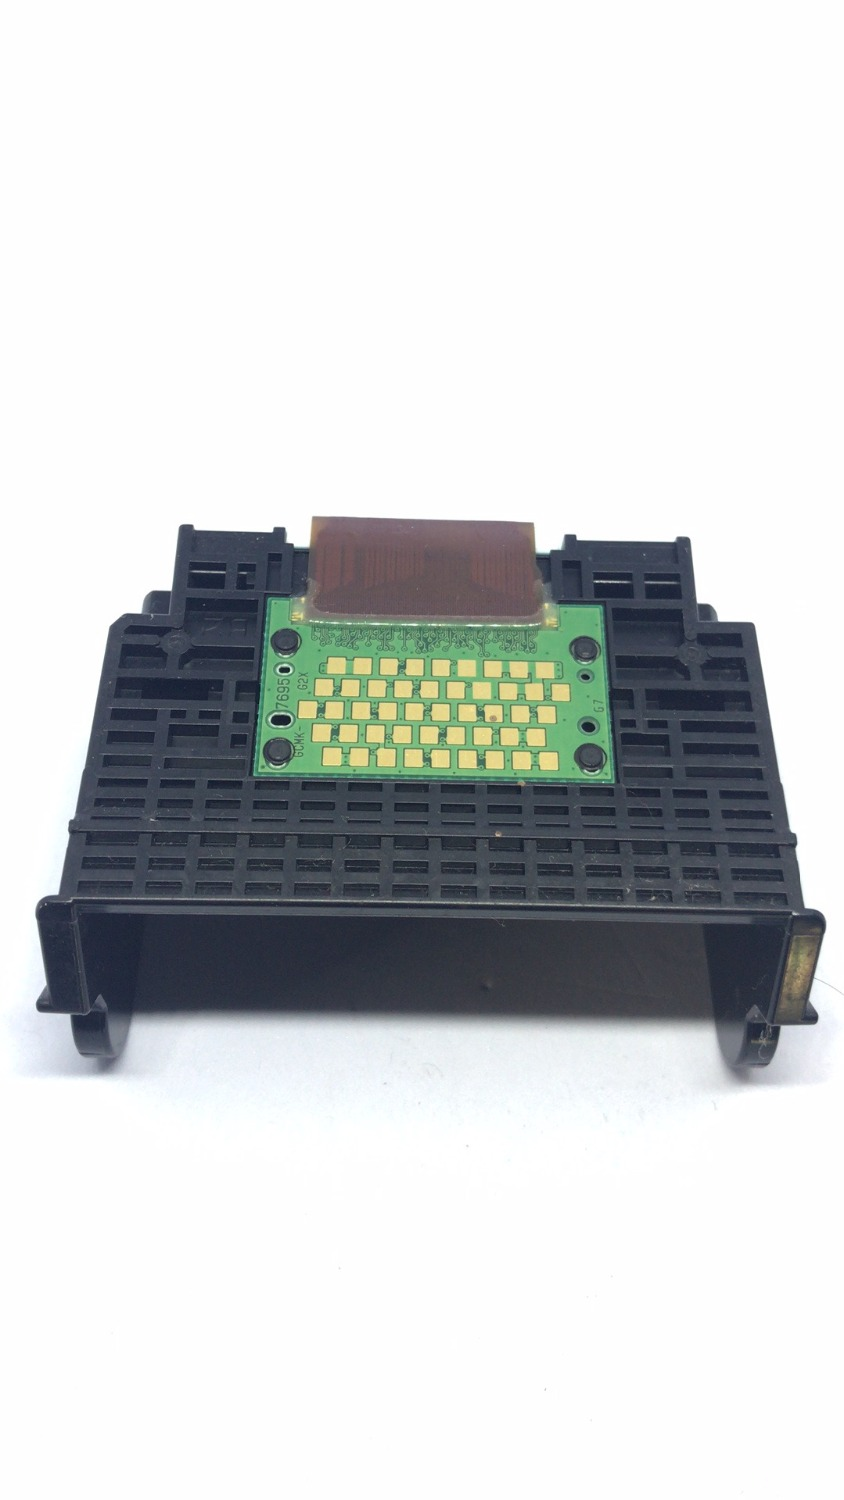 Refurbished Printhead QY6-0075 for CANON MX850 print head original qy6 0075 qy6 0075 000 printhead print head printer head for canon ip5300 mp810 ip4500 mp610 mx850